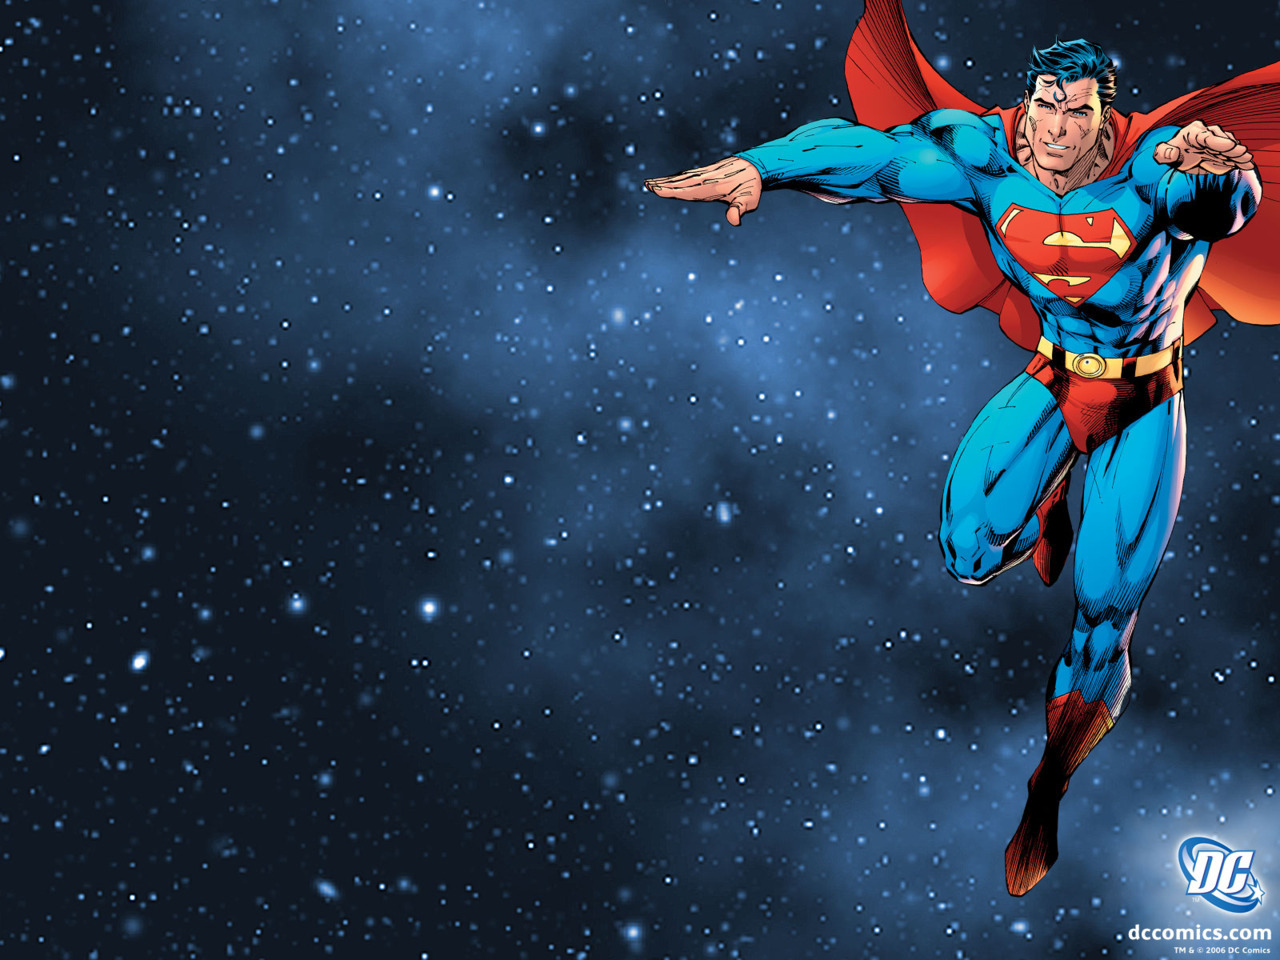 "Why Superman should become a Canadian:1. Superman's home, the Fortress of Solitude, is usually located in icy, desolate areas, which we have in abundance. And, like Michael Moore so famously pointed out in Bowling for Columbine, Canadians don't lock their doors, so Superman can finally ditch that giant yellow key nonsense.2. We love immigrants and Superman is the ultimate immigrant! Also, in Canada we respect traditional immigrant garb, so Superman's Kryptonian-inspired super-snug ensemble is totally fine by us. We will not laugh at his outside-the-pants underwear choice. We swear.3. When teens backpack through Europe they proudly display Canadian flag patches on their gear, even if they're not from Canada. A couple of patches on Superman's outfit and he'll be totally welcomed everywhere, no longer a ""tool of the American oppressors,"" just ""that nice man from Canada who shoots fire from his eyes.""4. Superman was co-created by a Canadian, Joe Shuster! After 73 years of belonging to America, he could at least spend a year or two here. Out of respect for the man who first drew him.5. A lot of Canadians work in the United States! Superman could totally keep his job at the Daily Planet. But, if he so chose to continue his journalistic career here in Canada, the Post is hiring (not really. Please don't send us your résumé, Jimmy Olsen).6. Superman was raised to be polite, which we value greatly here in Canada. Frankly, we were relieved when that potty-mouth Wolverine moved from Canada to the States. That guy has no manners."